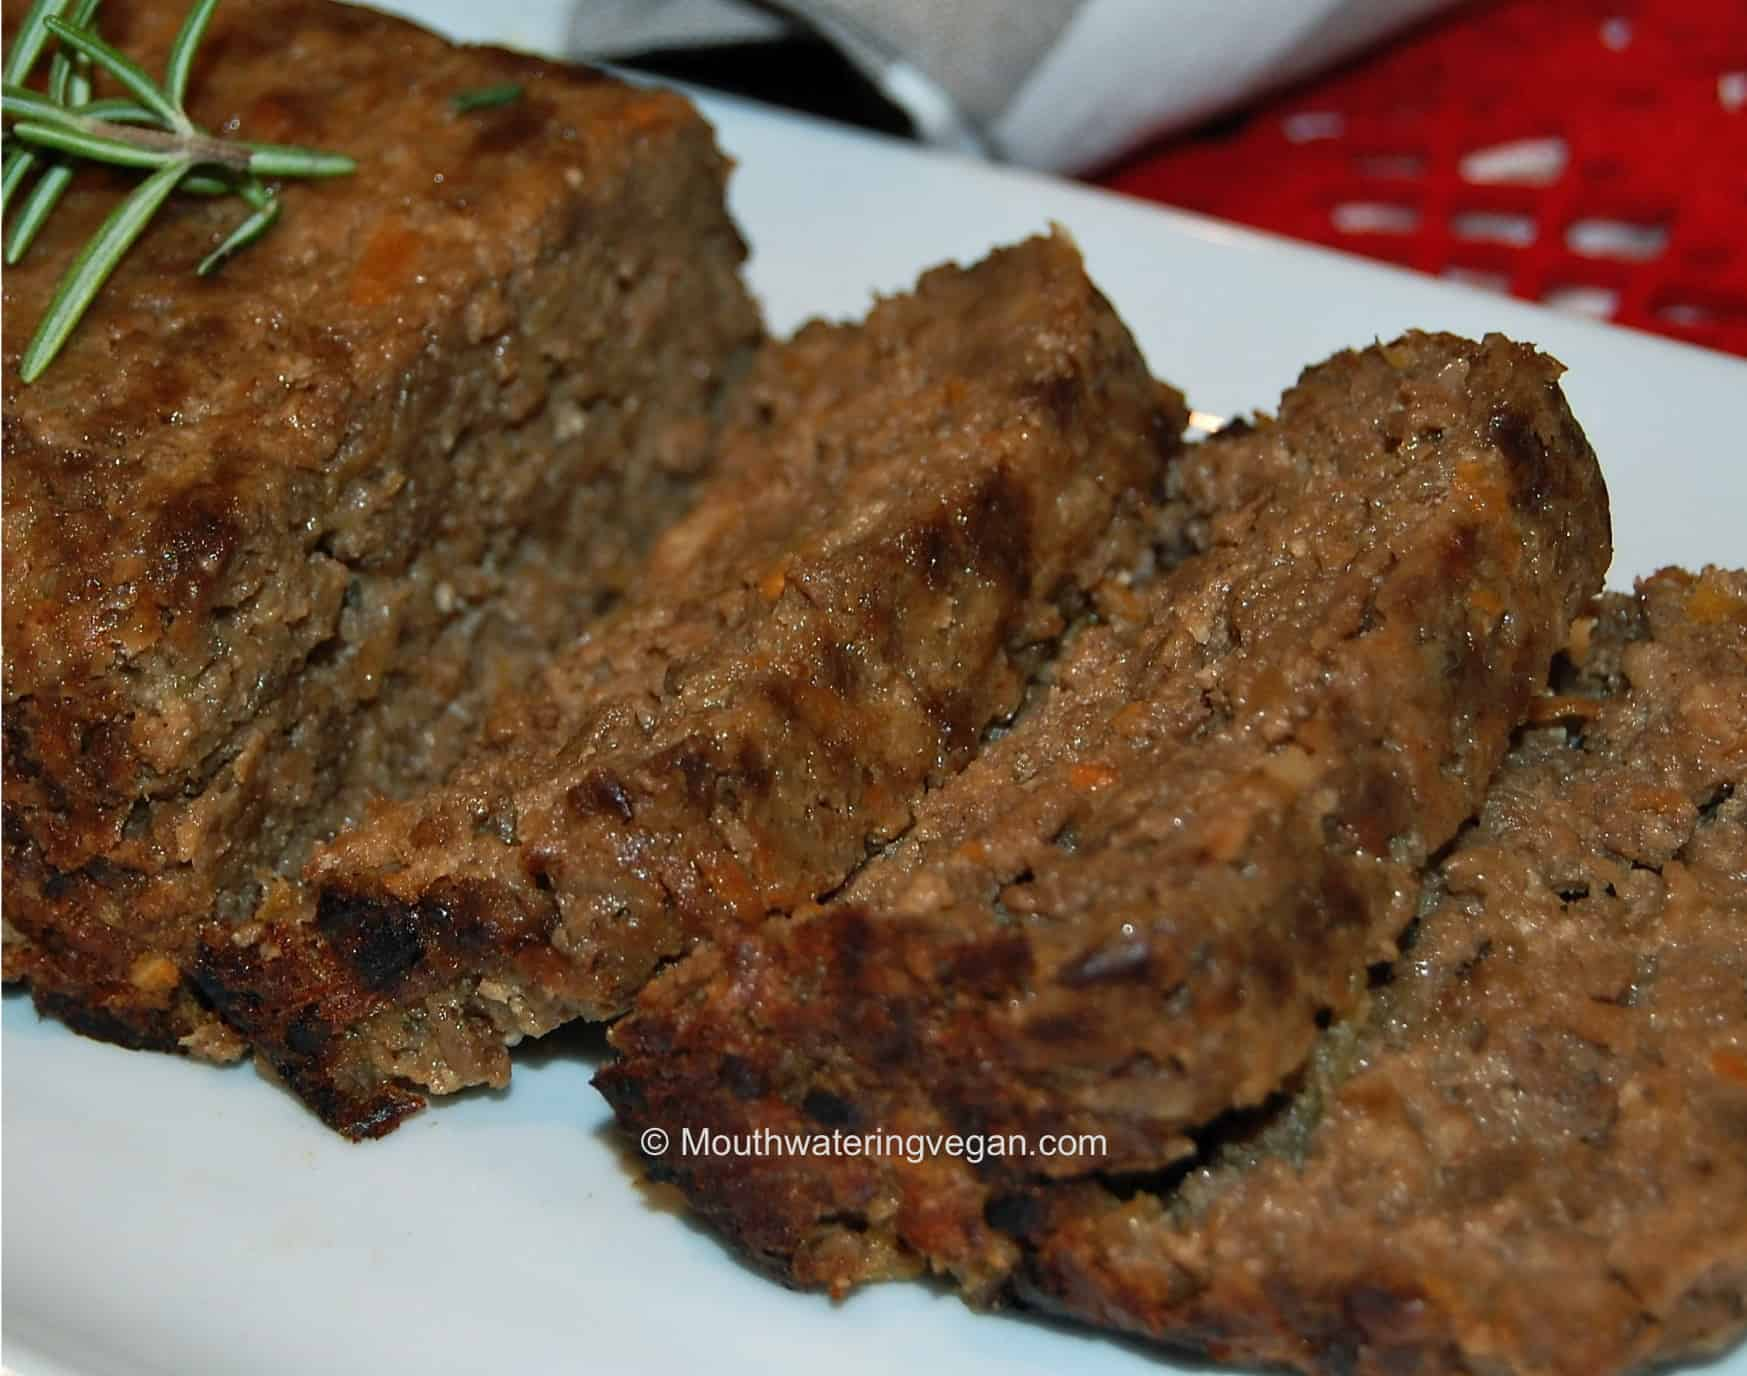 Diner-Style 'Meat' Loaf - Mouthwatering Vegan Recipes™